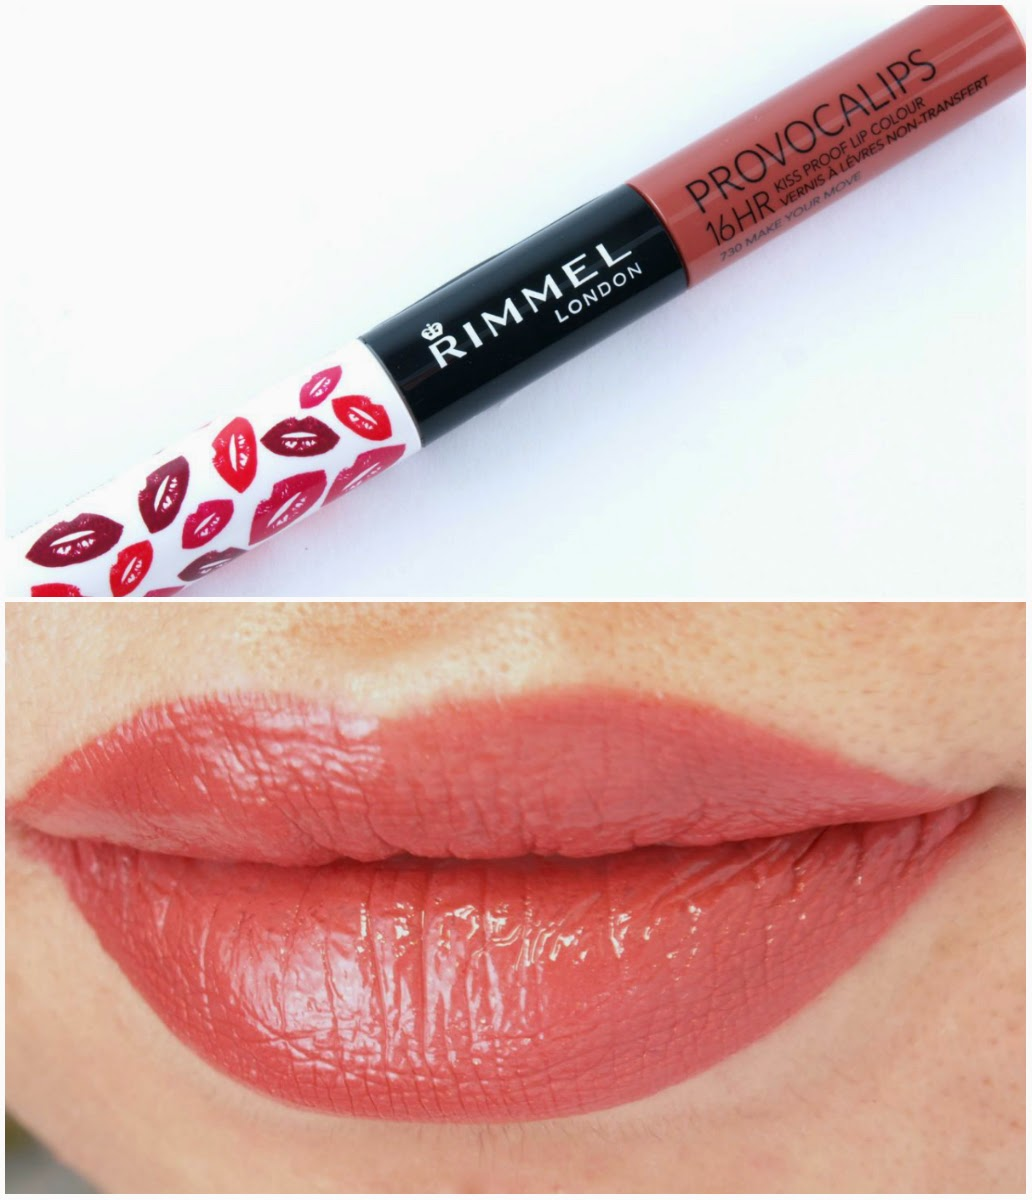 Rimmel Provocalips 16hr Kiss Proof Lip Color Review And Swatches The Happy Sloths Beauty Makeup And Skincare Blog With Reviews And Swatches